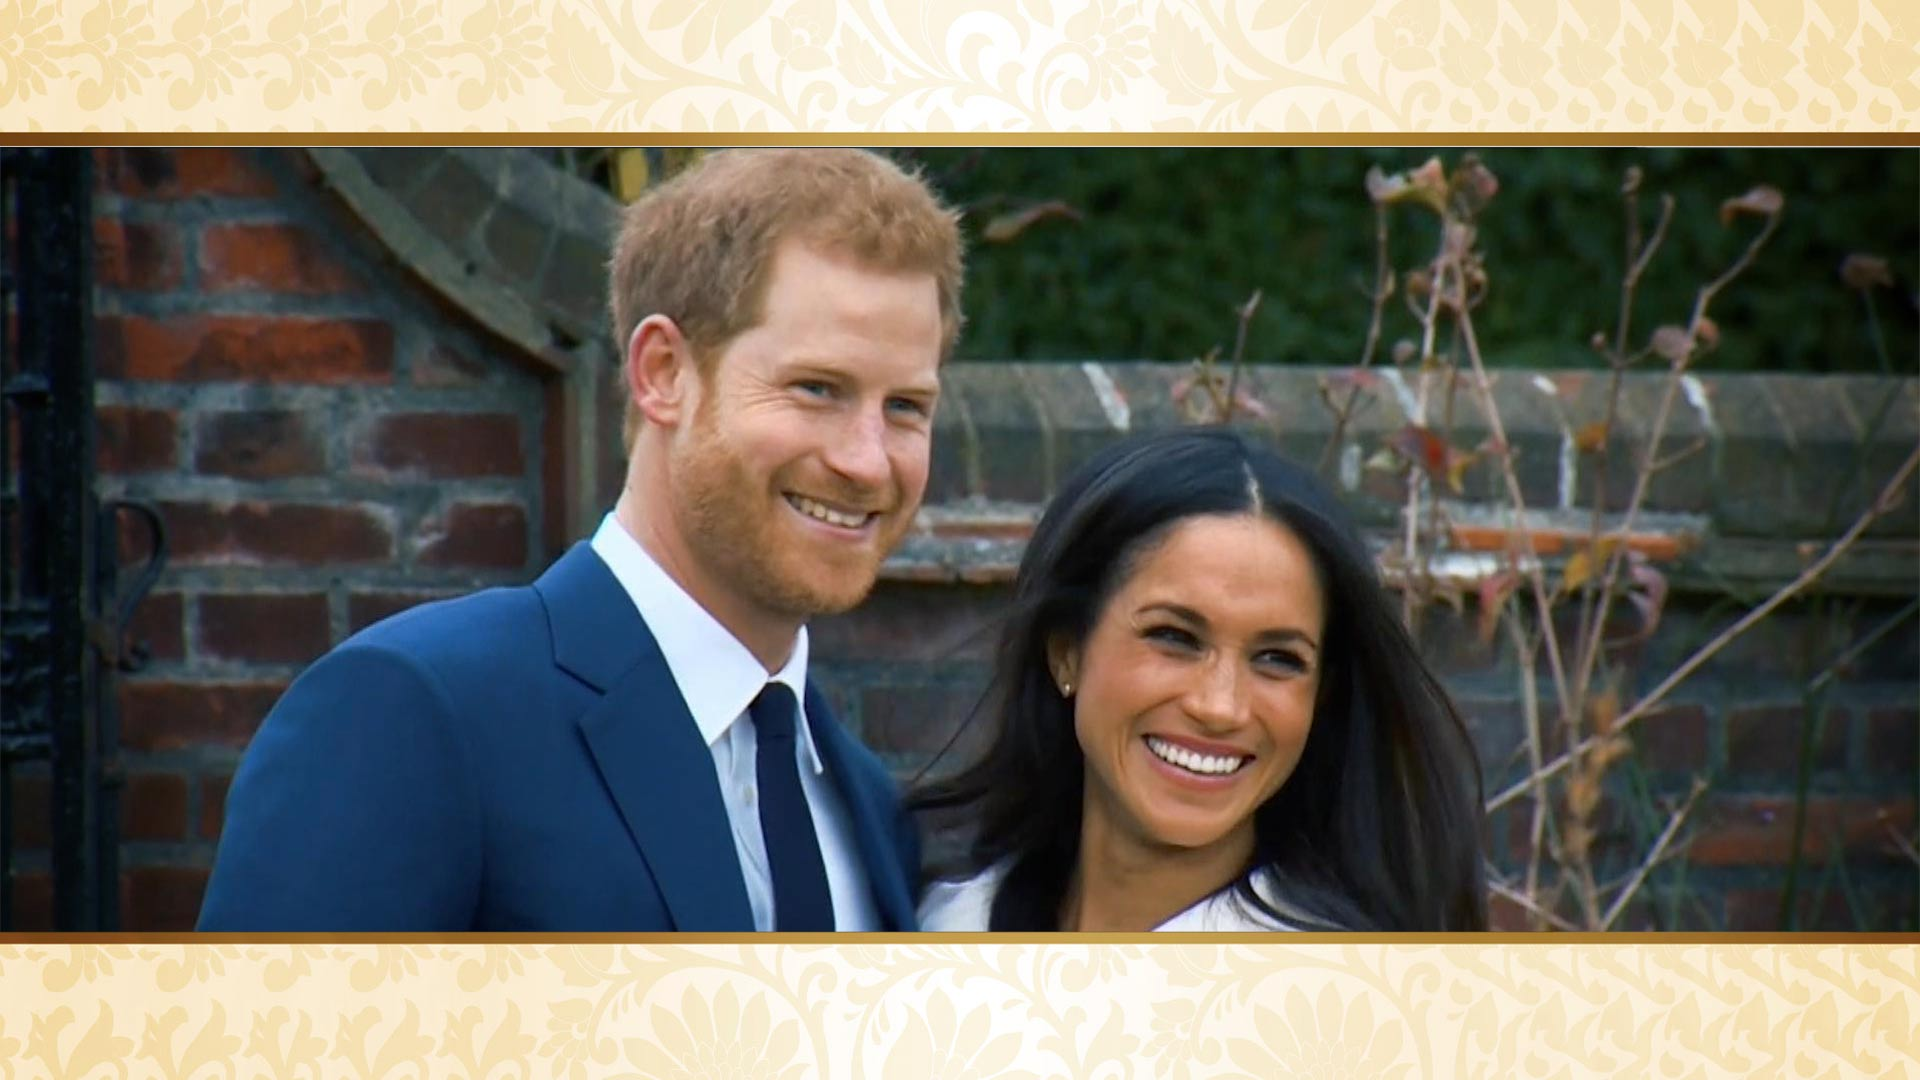 Prince Harry of Wales and American Meghan Markle.